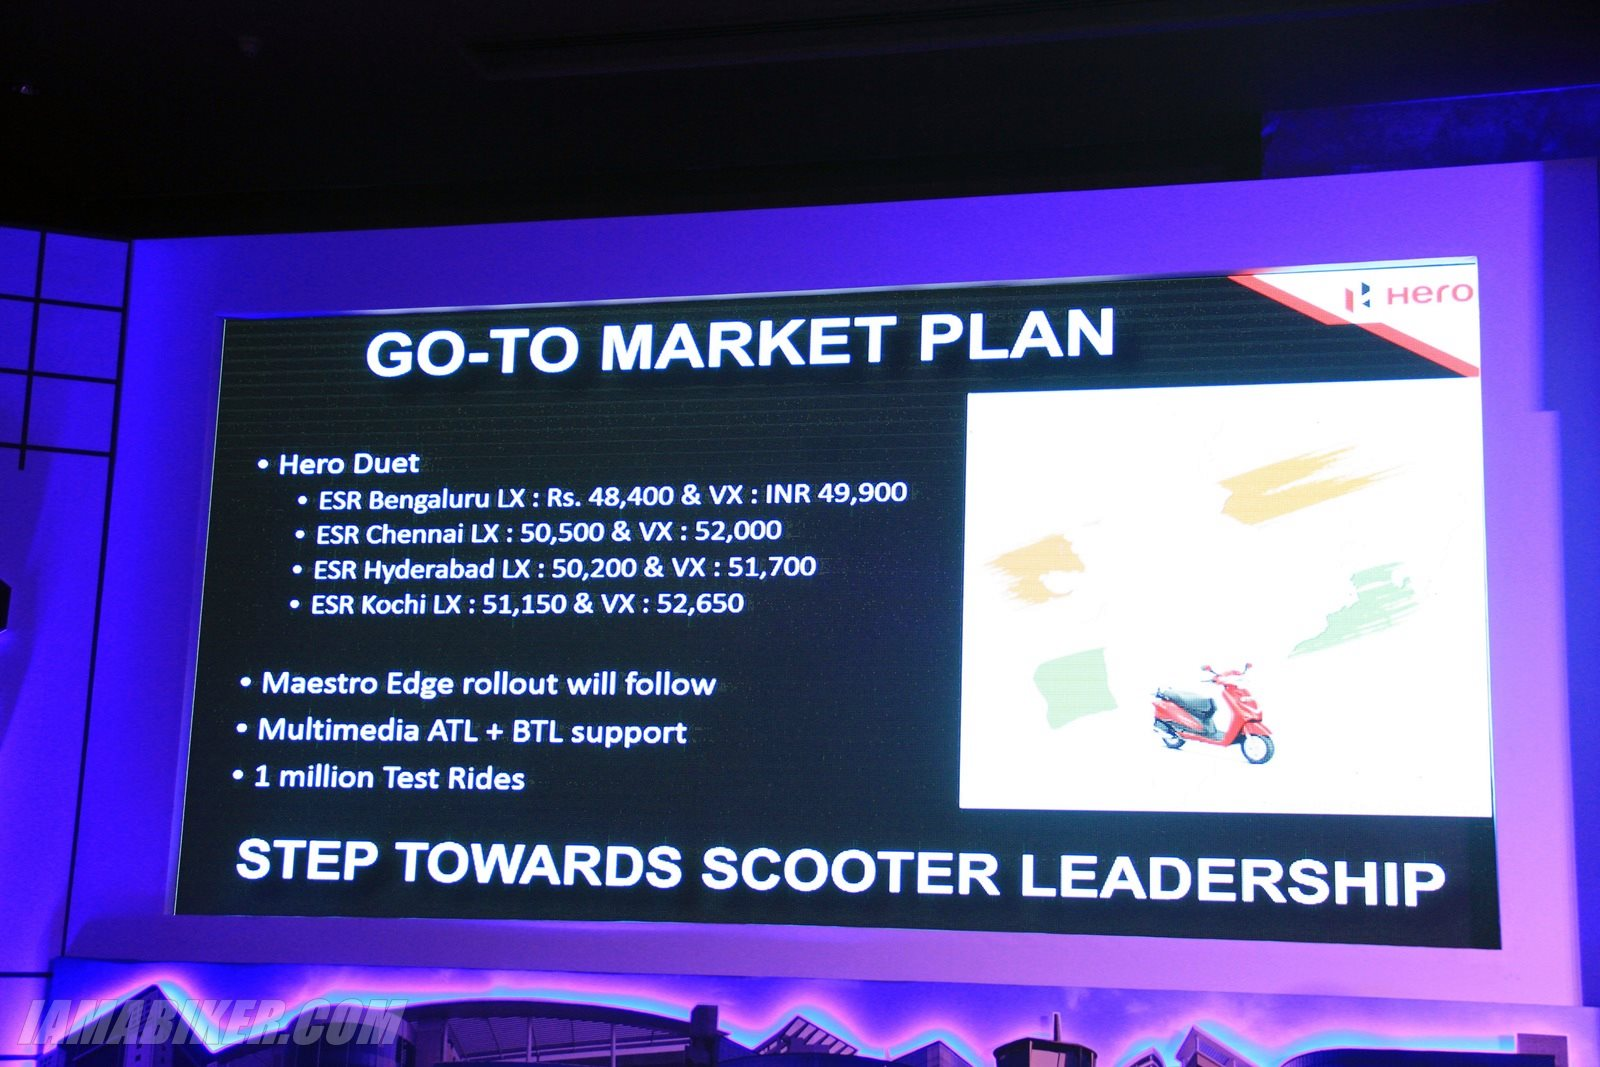 Hero Duet marketing plan